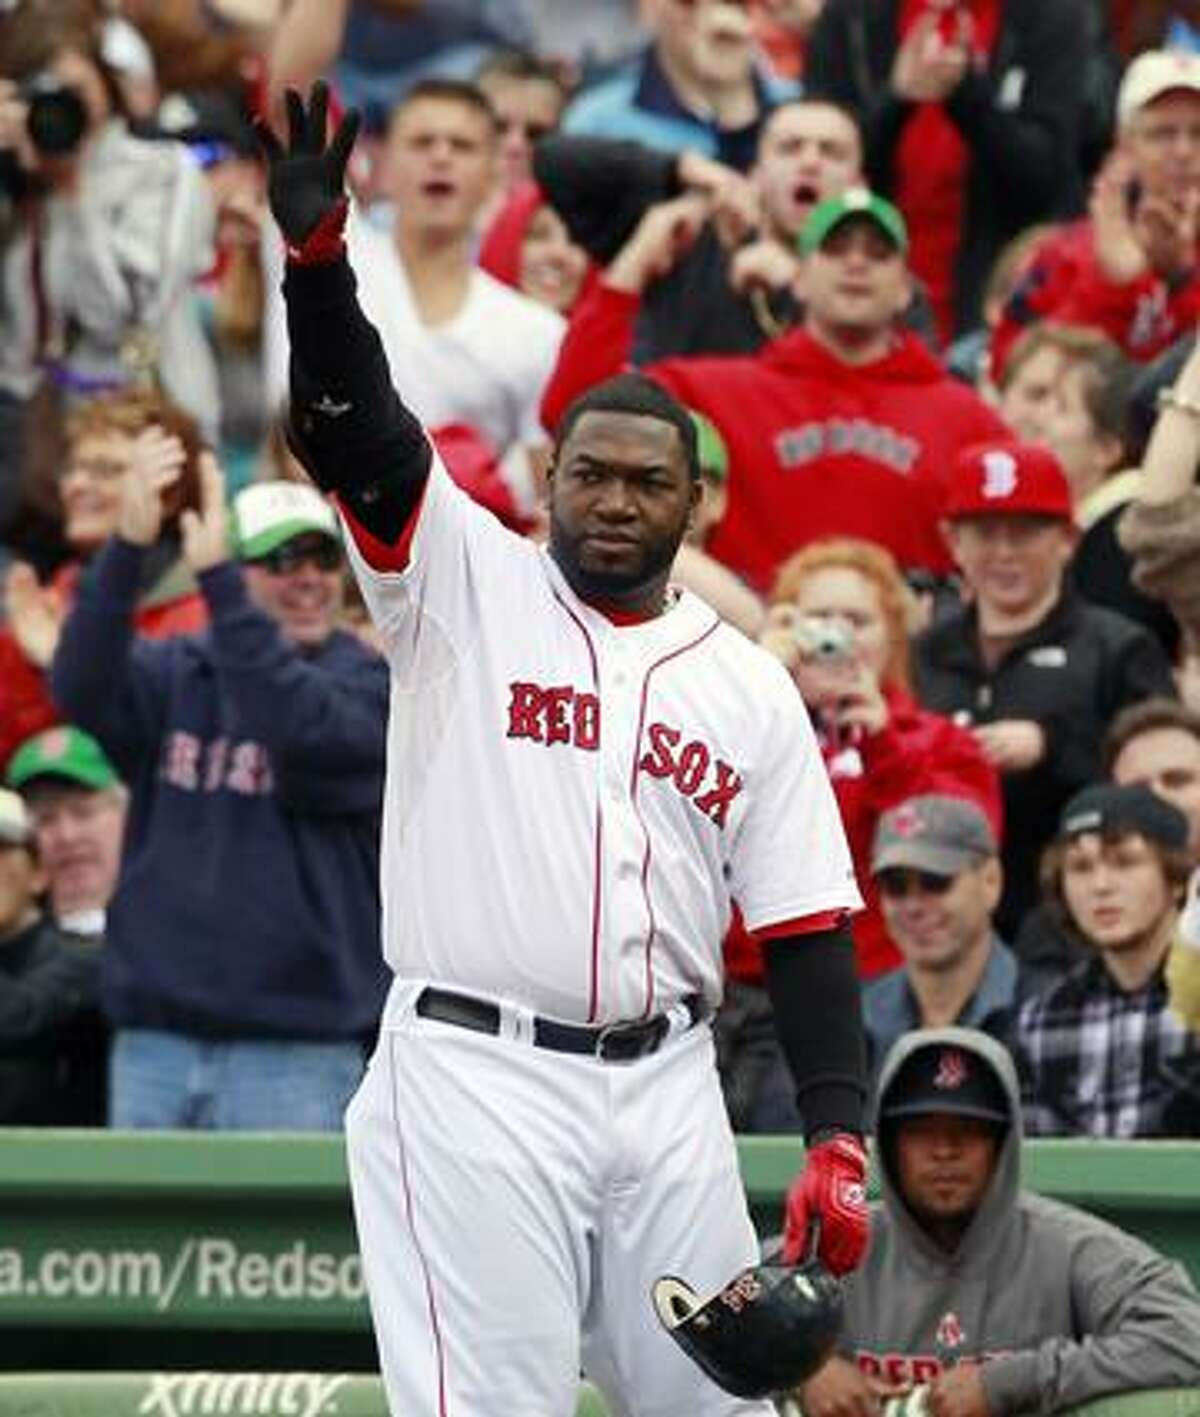 Boston Red Sox's David Ortiz waves to the crowd as he leaves a baseball game against the New York Yankees in the sixth inning, Sunday in Boston. (AP Photo/Michael Dwyer)